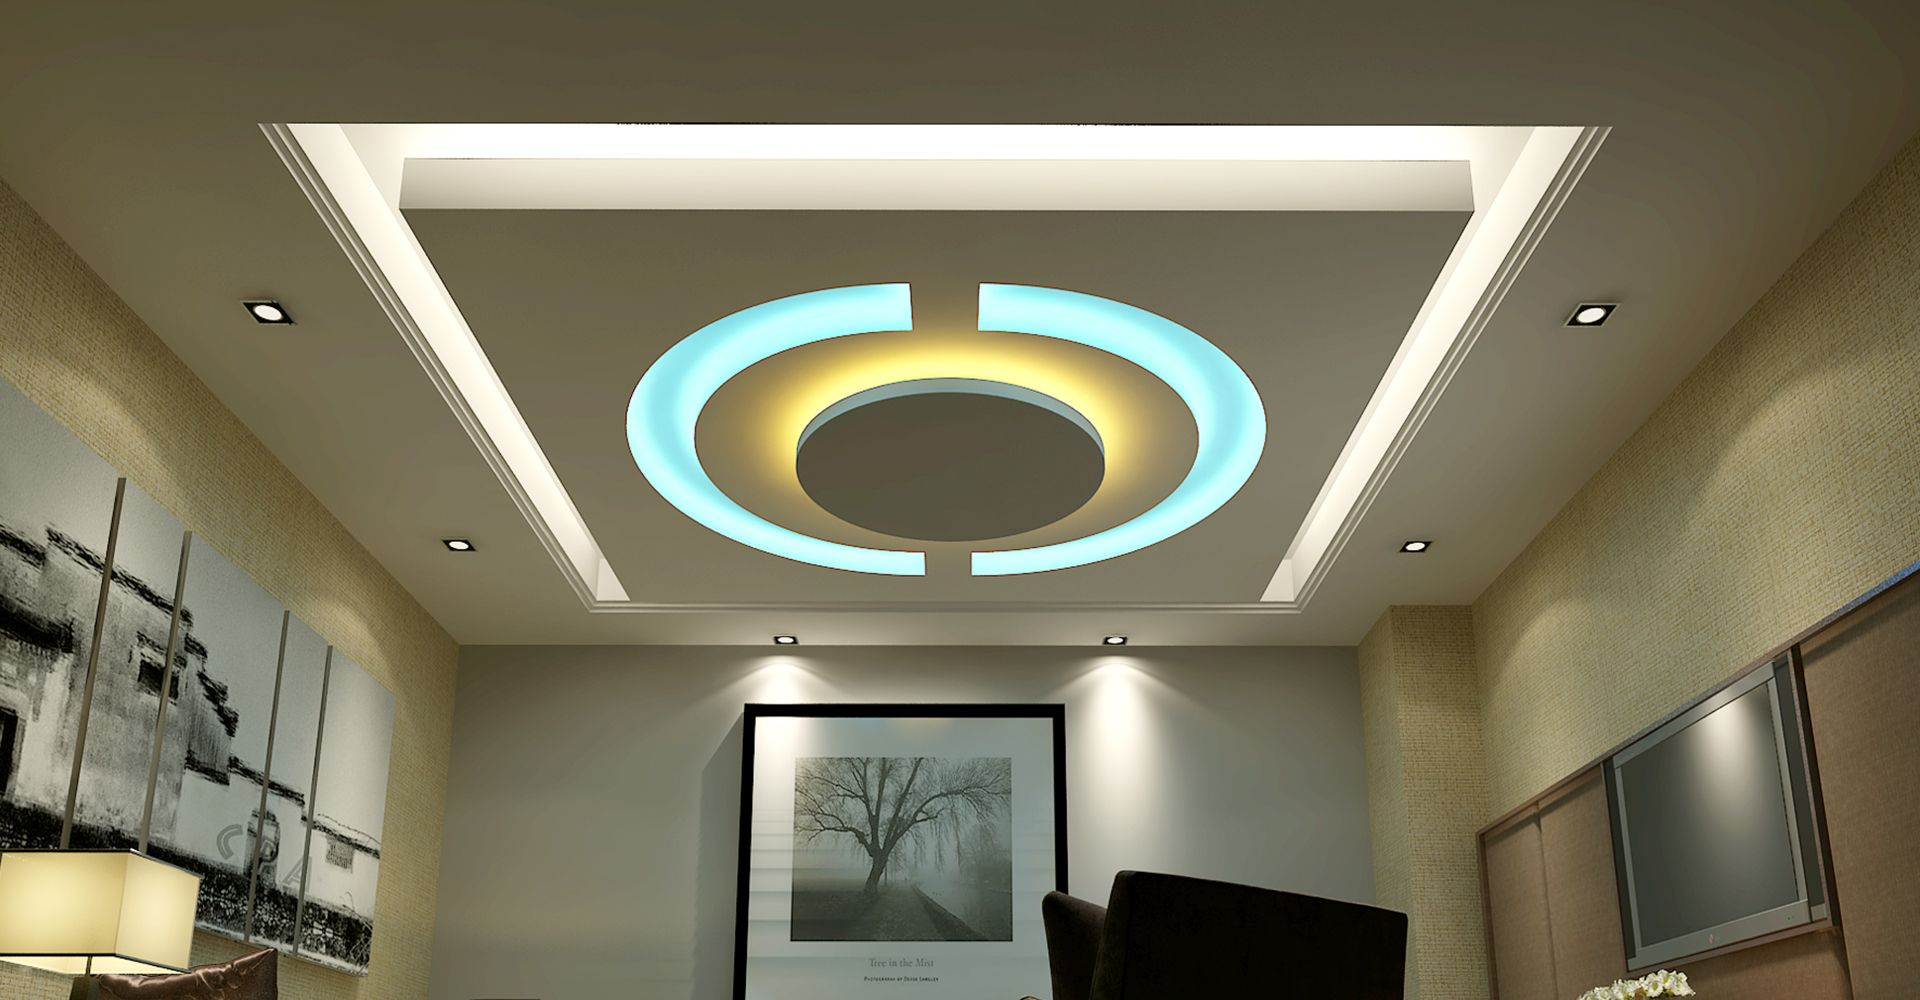 Ceilling Design   StartPage By Ixquick Picture Search · False Ceiling ... Part 96